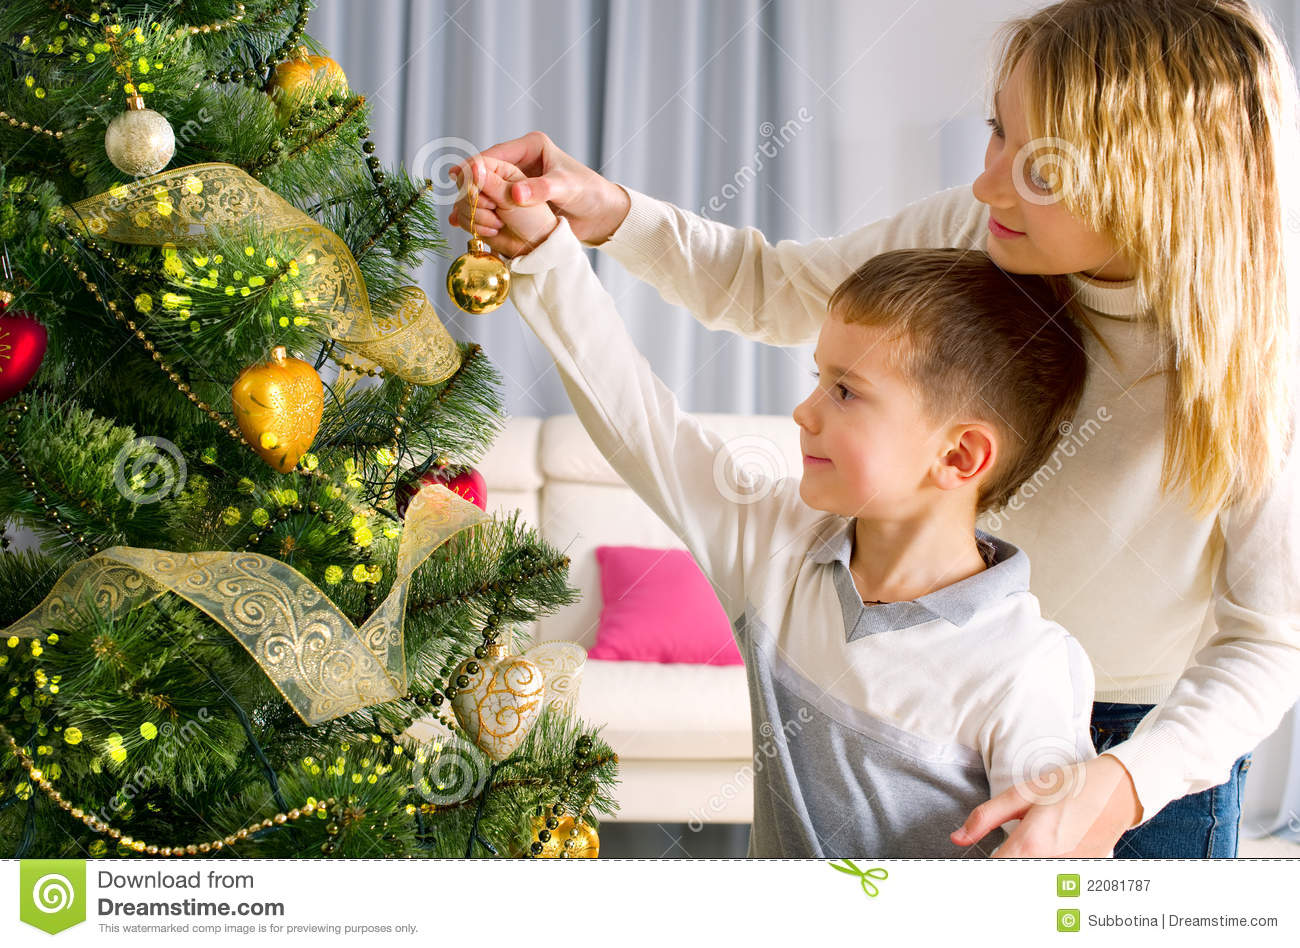 Kids Decorating A Christmas Tree Royalty Free Stock